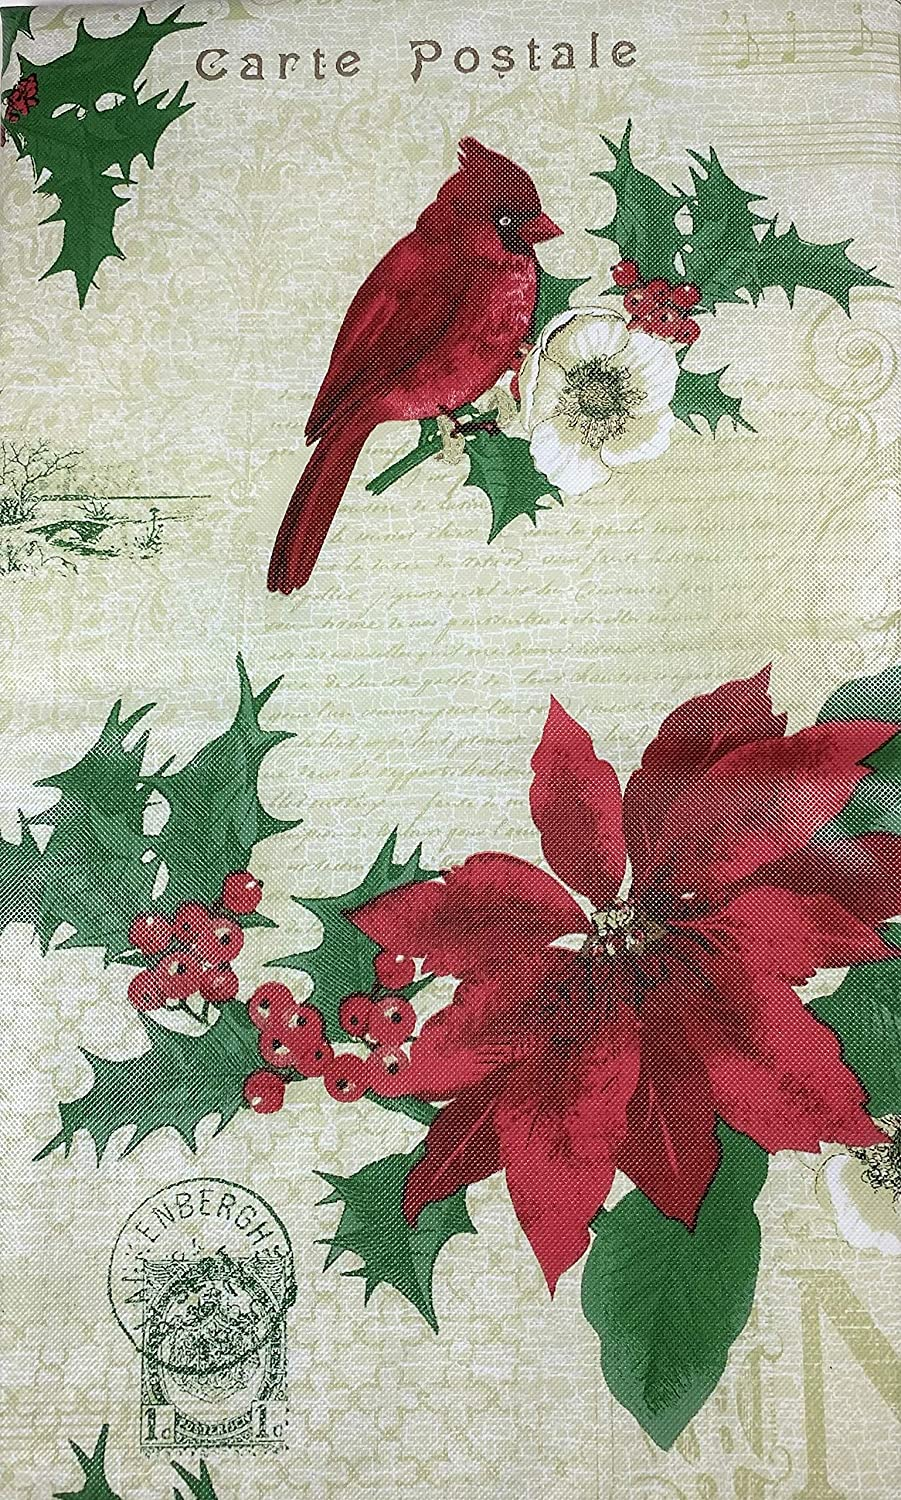 Christmas Vinyl Flannel Tablecloth 52 x 90 Oblong Elegant Cardinals Poinsettias